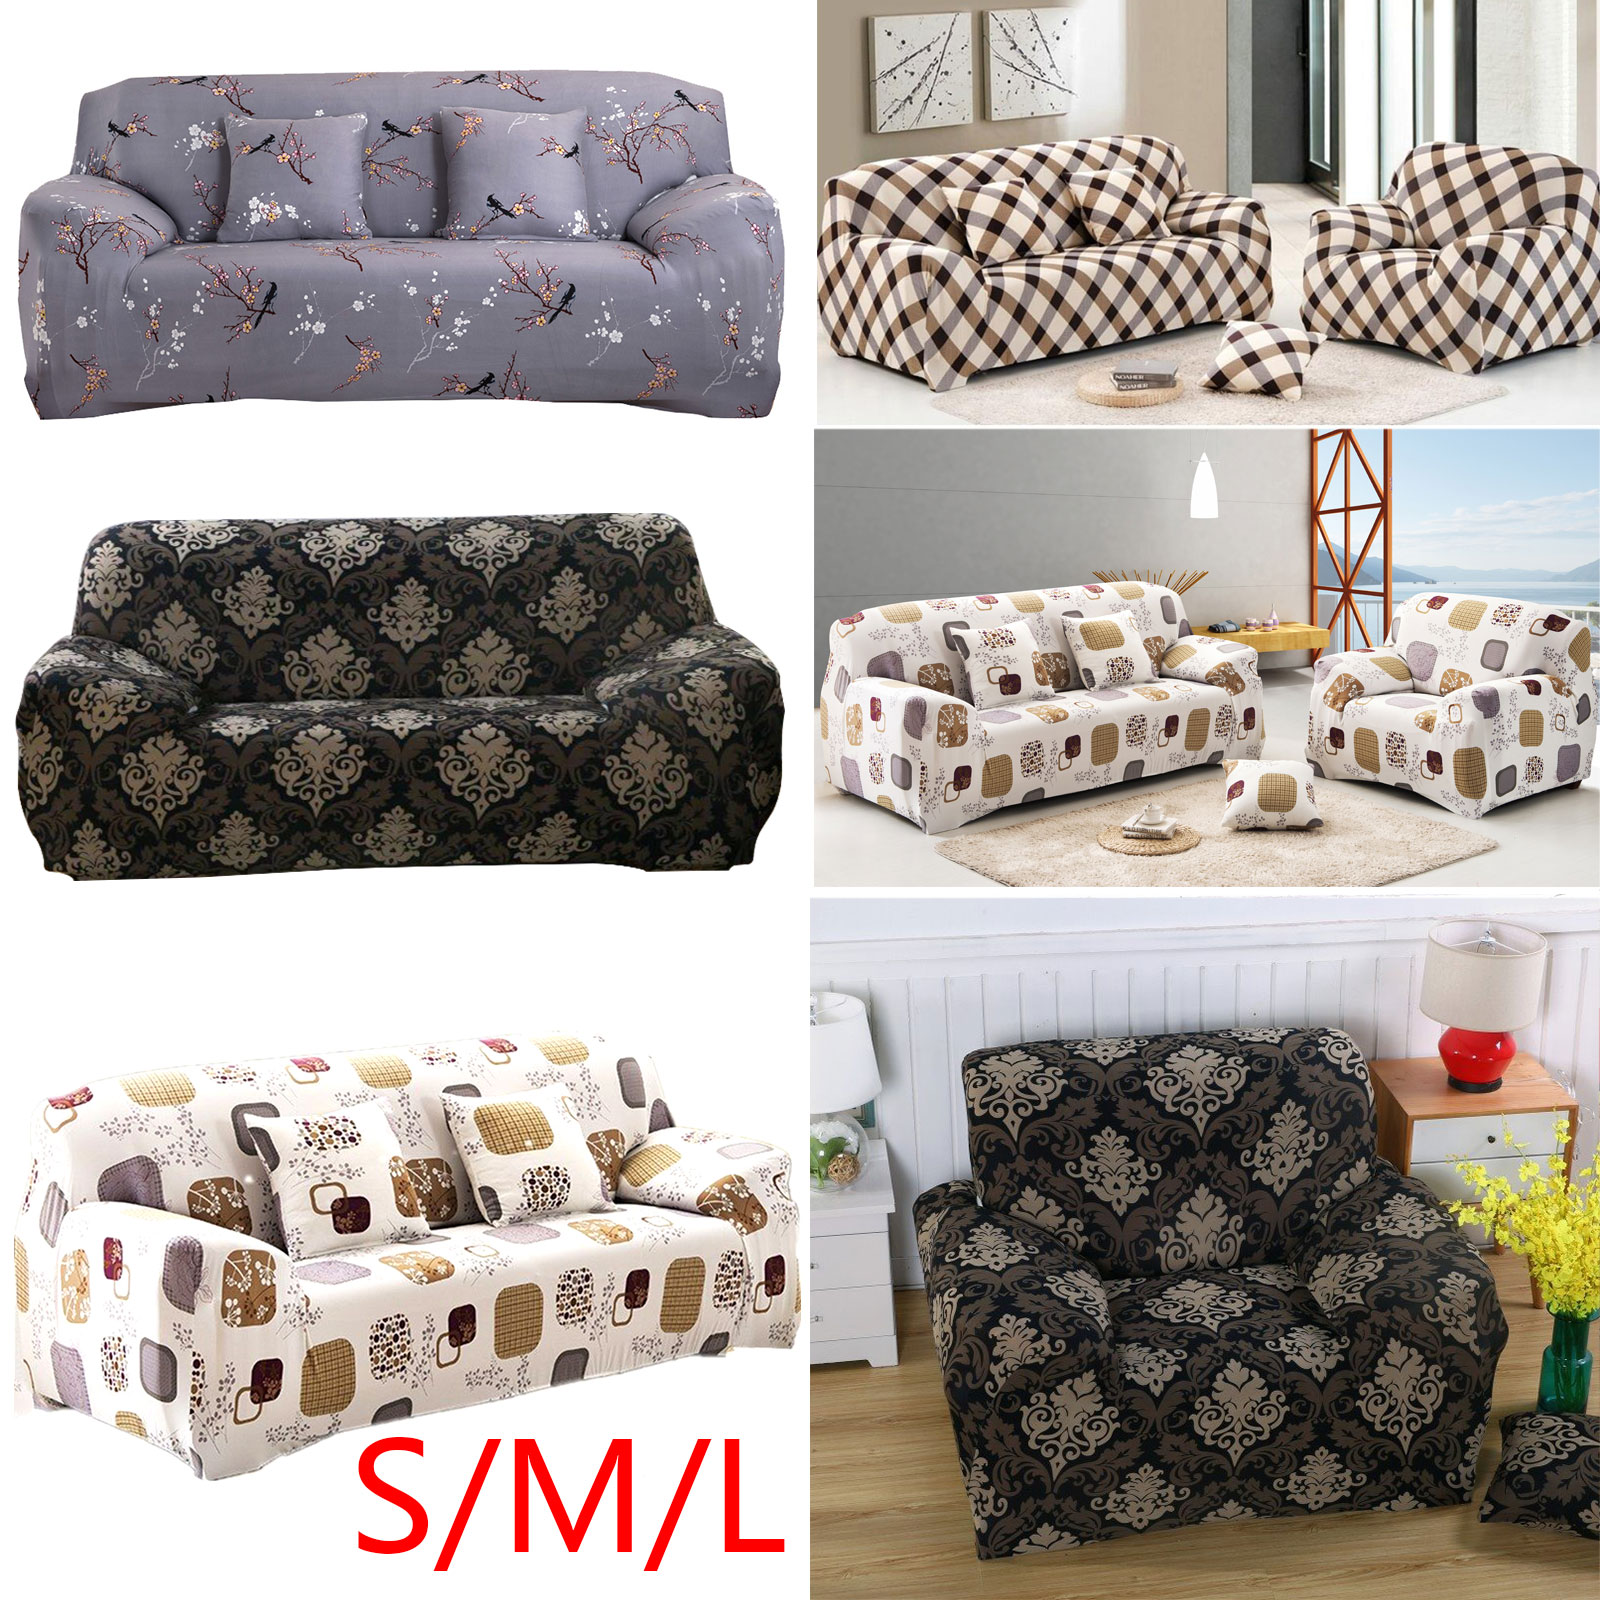 Details about 1 2 3 Seater Floral Elastic Soft Sofa Couch Covers Stretch  Slipcover Protector f54b5740d